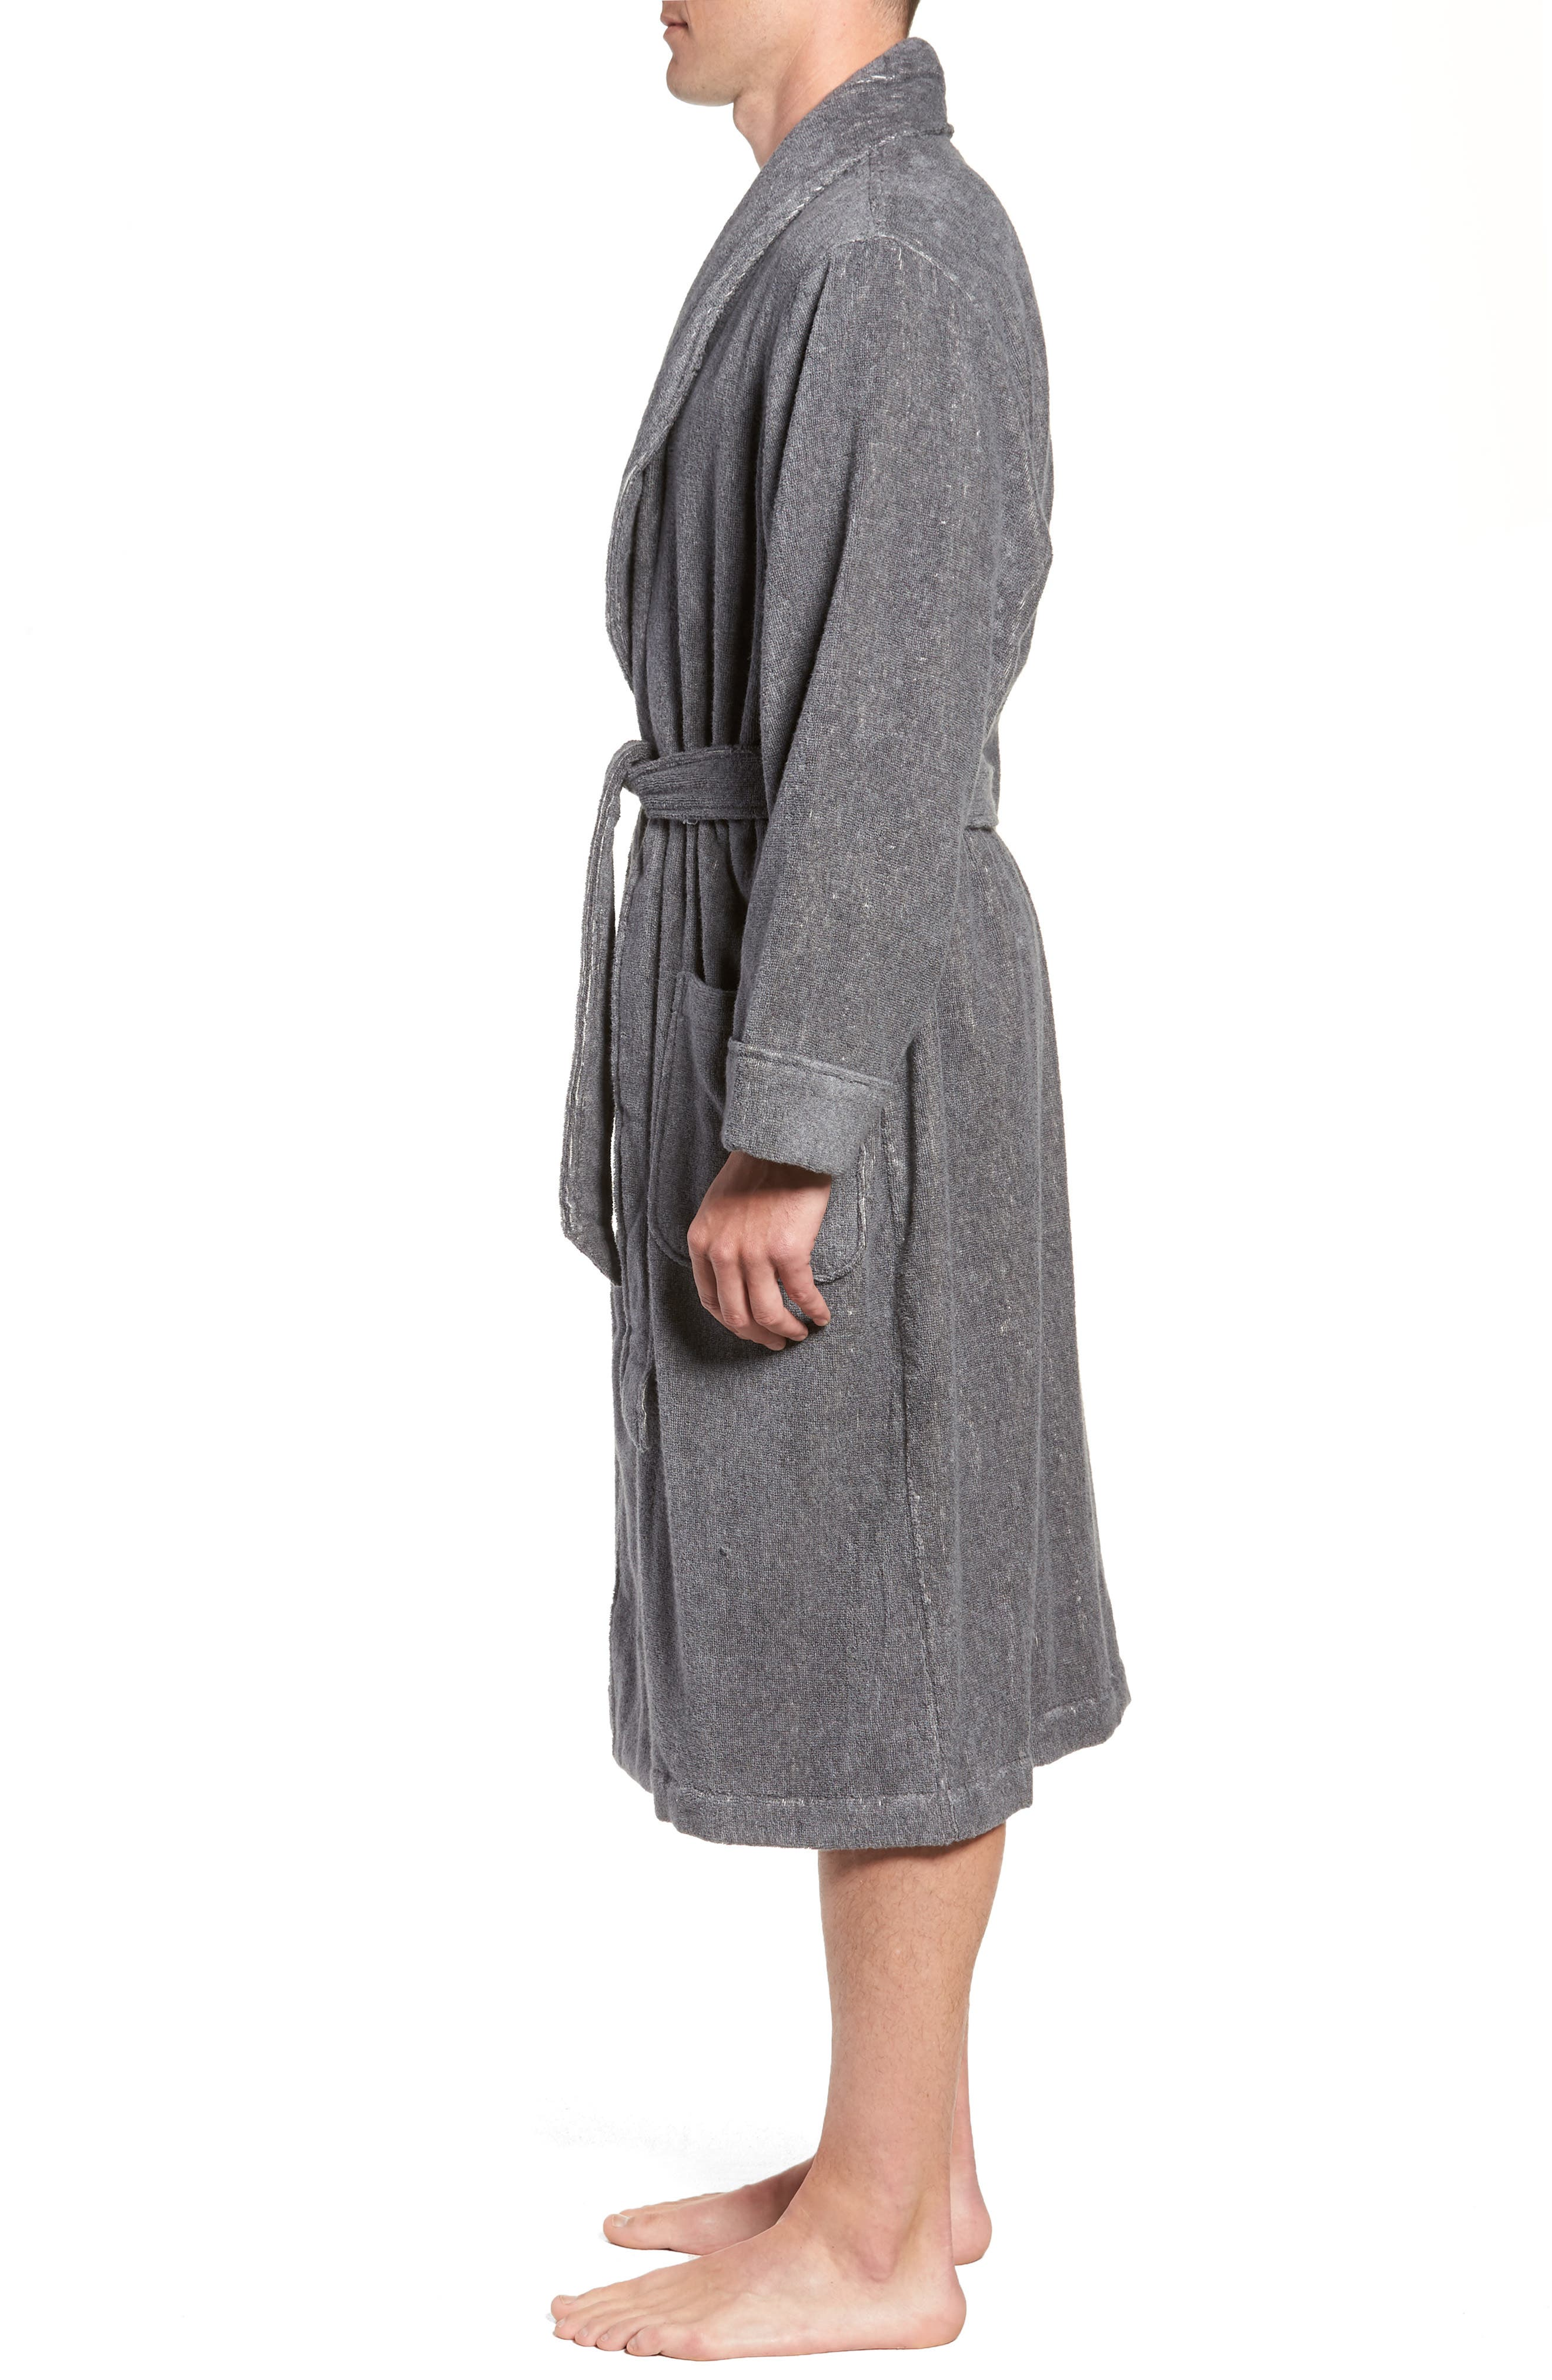 Hydro Cotton Terry Robe,                             Alternate thumbnail 3, color,                             CHARCOAL HEATHER